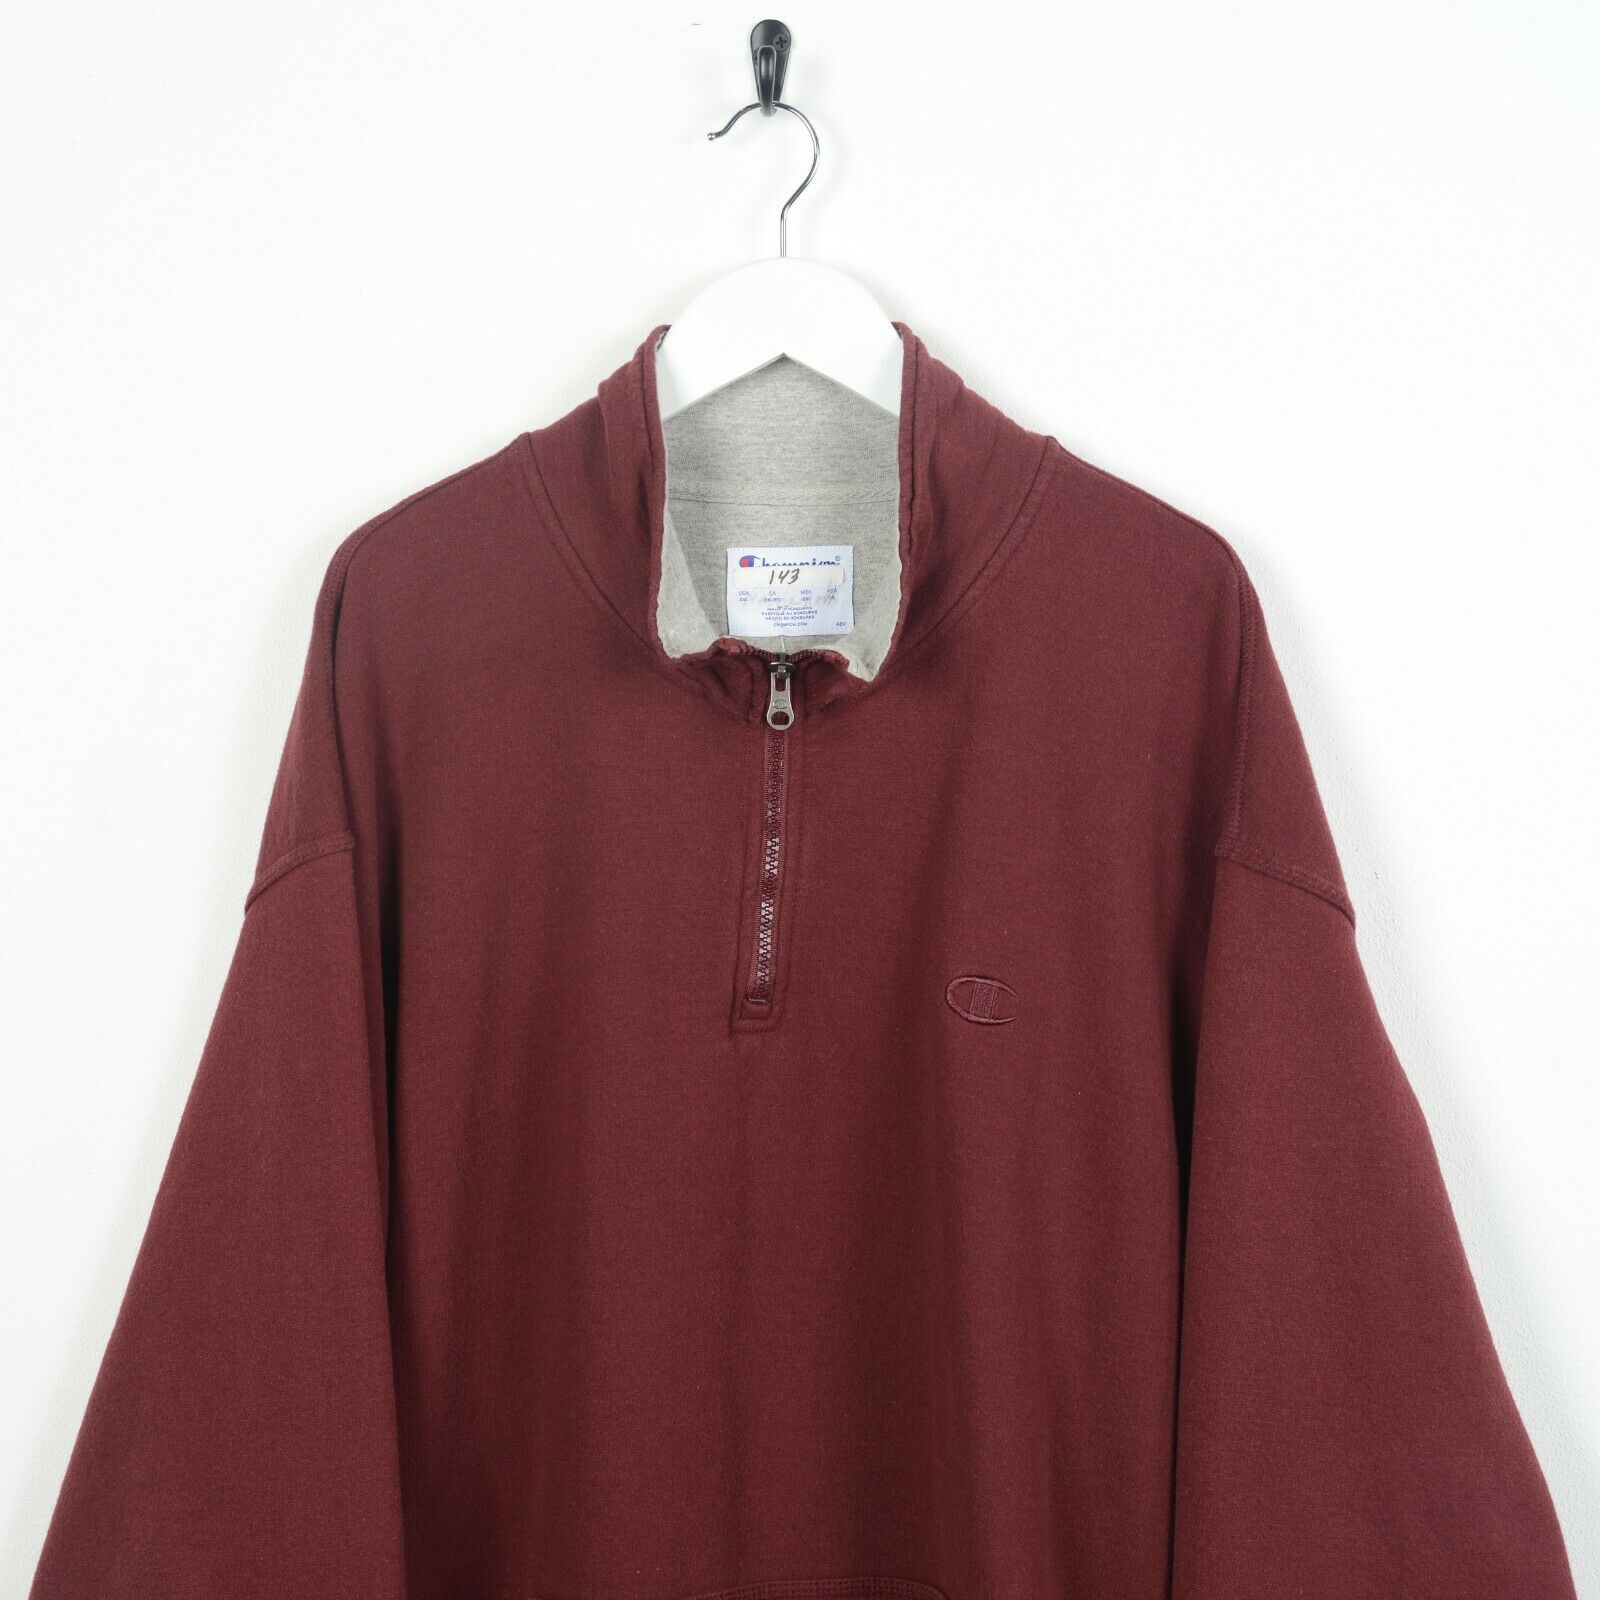 Vintage 90s CHAMPION Cuff Logo 1/4 Zip Sweatshirt Jumper Burgundy Red 2XL